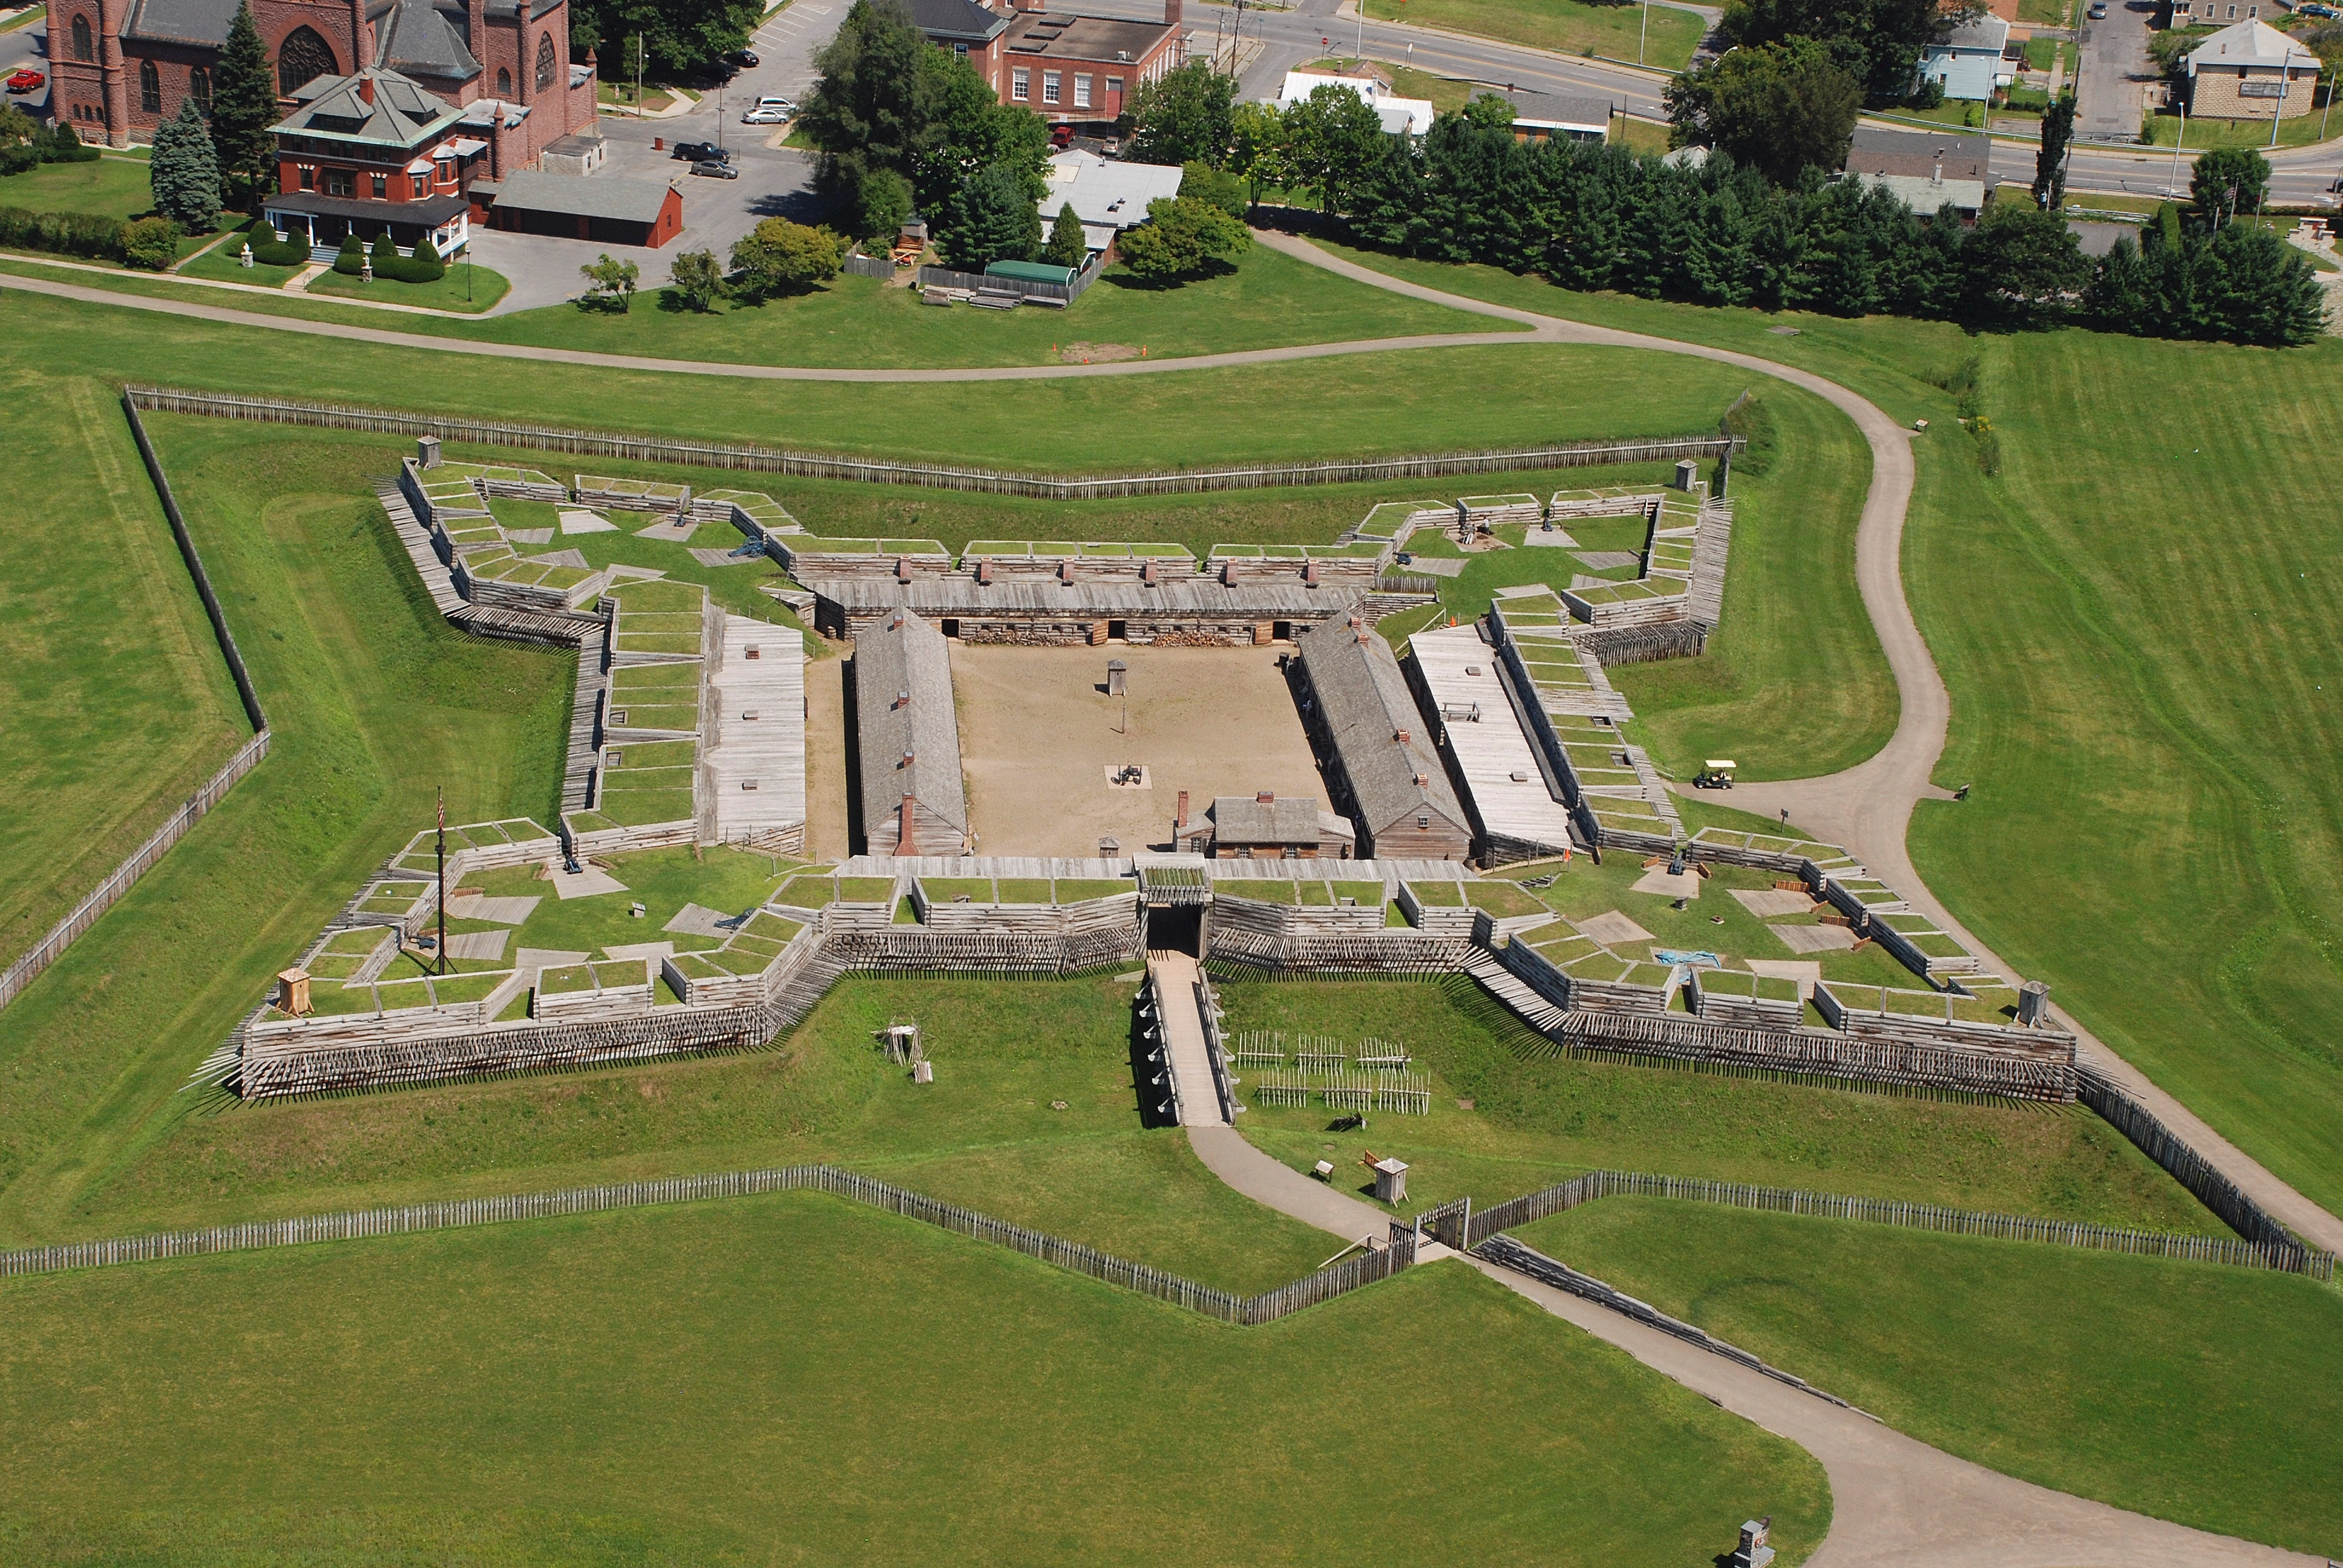 Revolutionary War The Siege Of Fort Stanwix